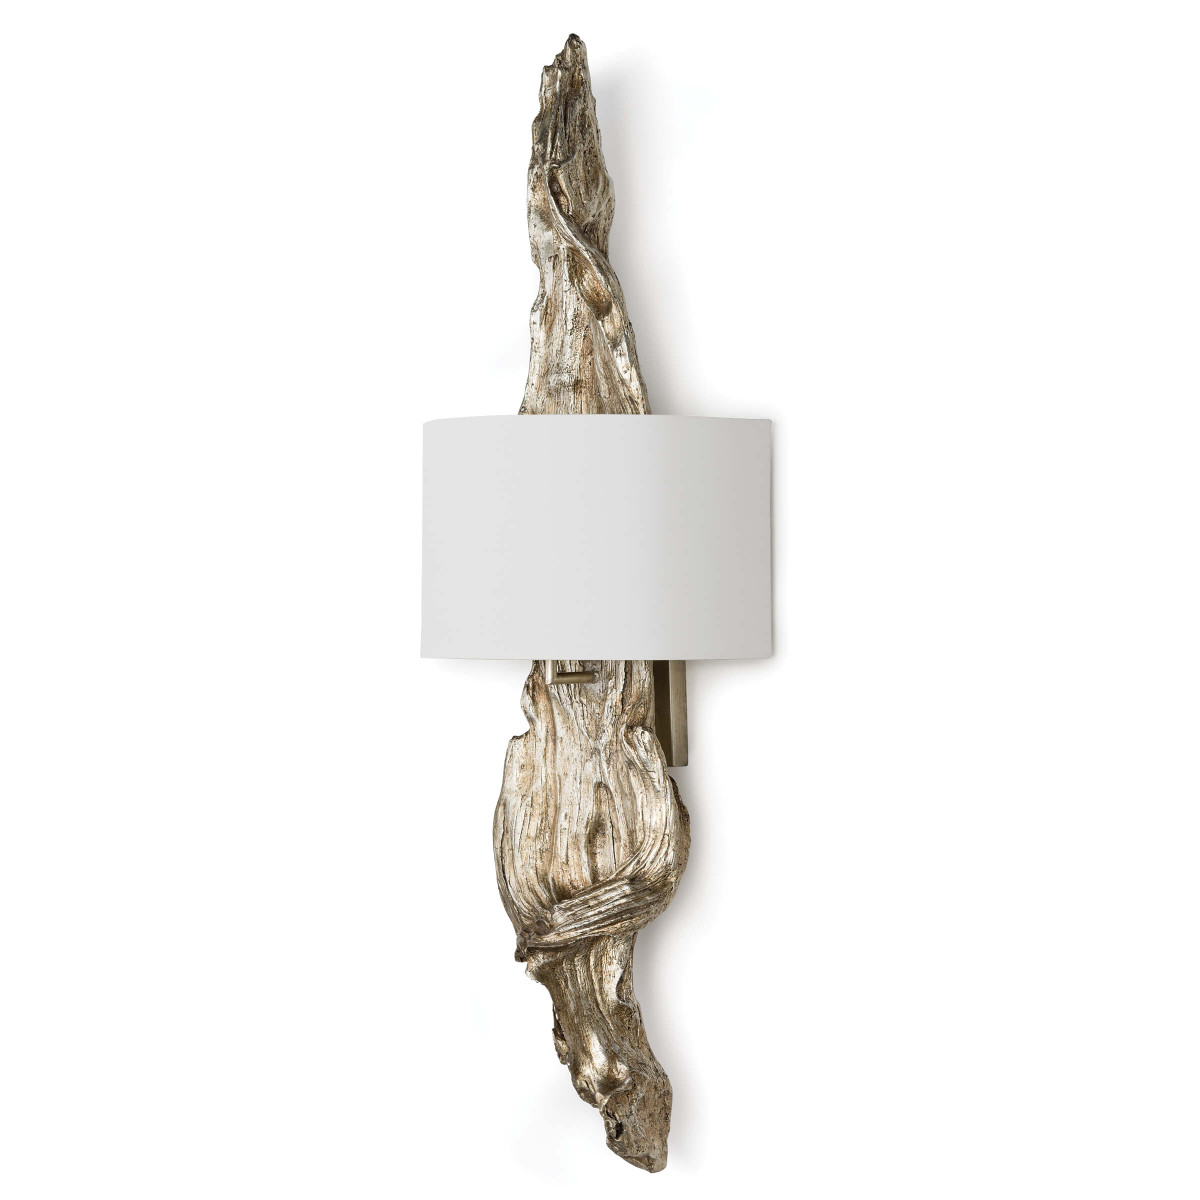 Ambered Silverleaf Sconce-$598.00